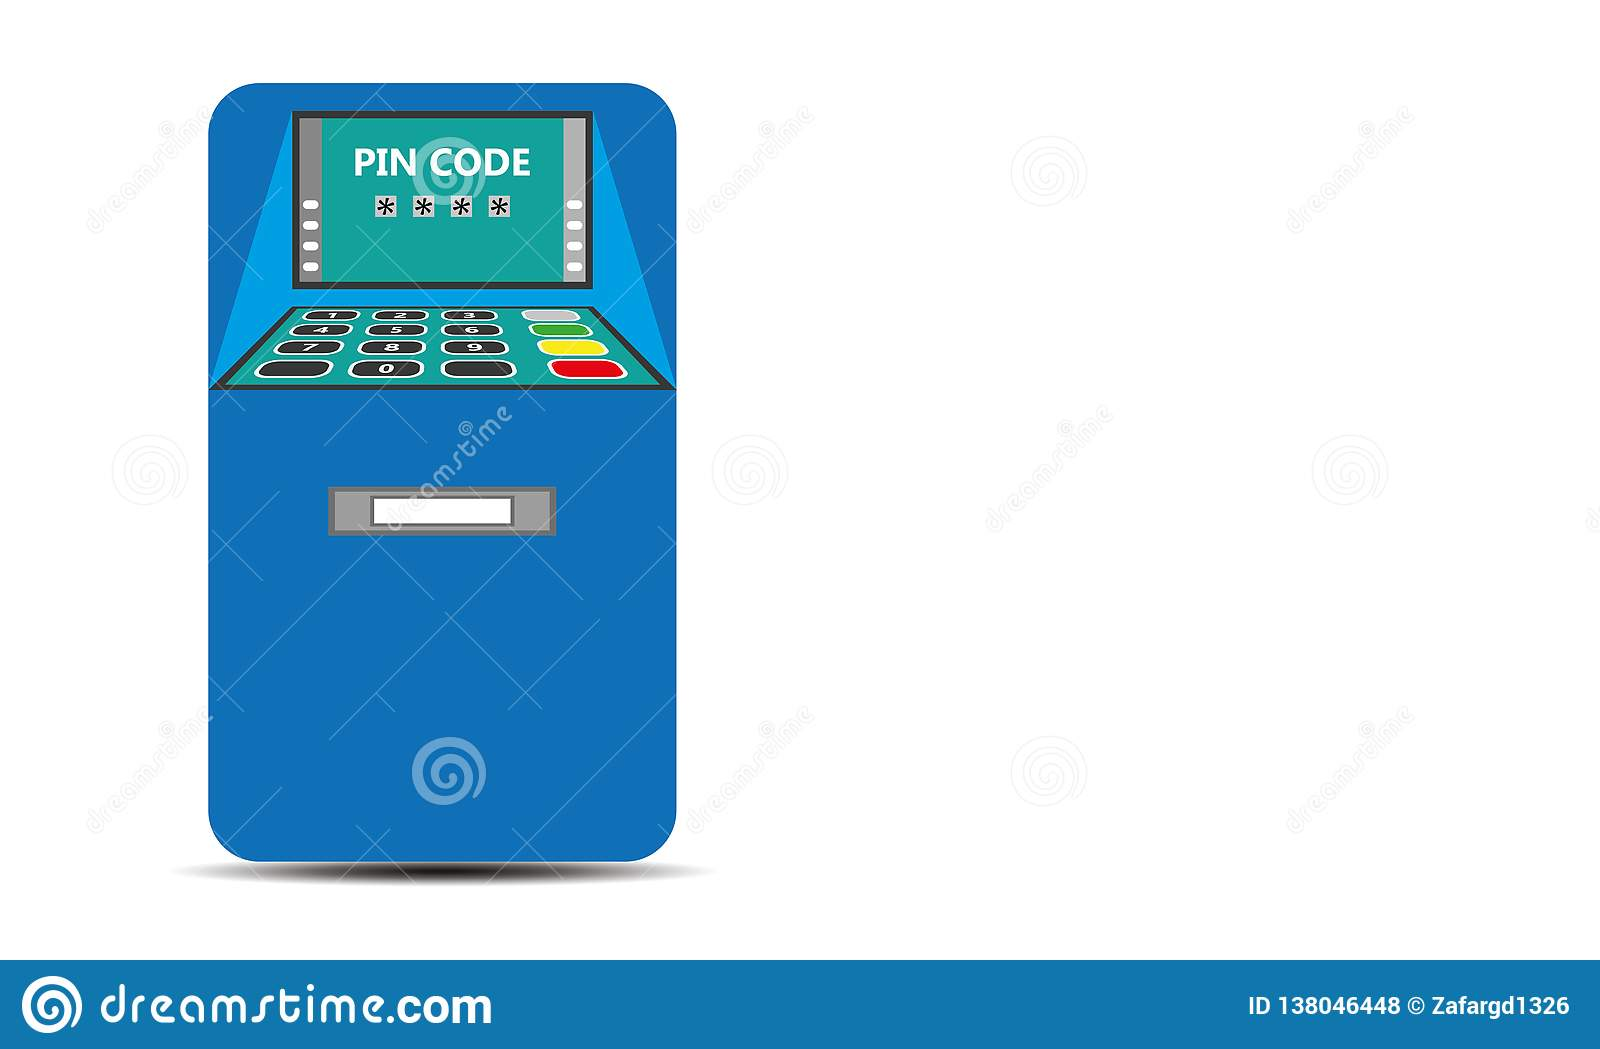 Bank ATM - Automated Teller Machine